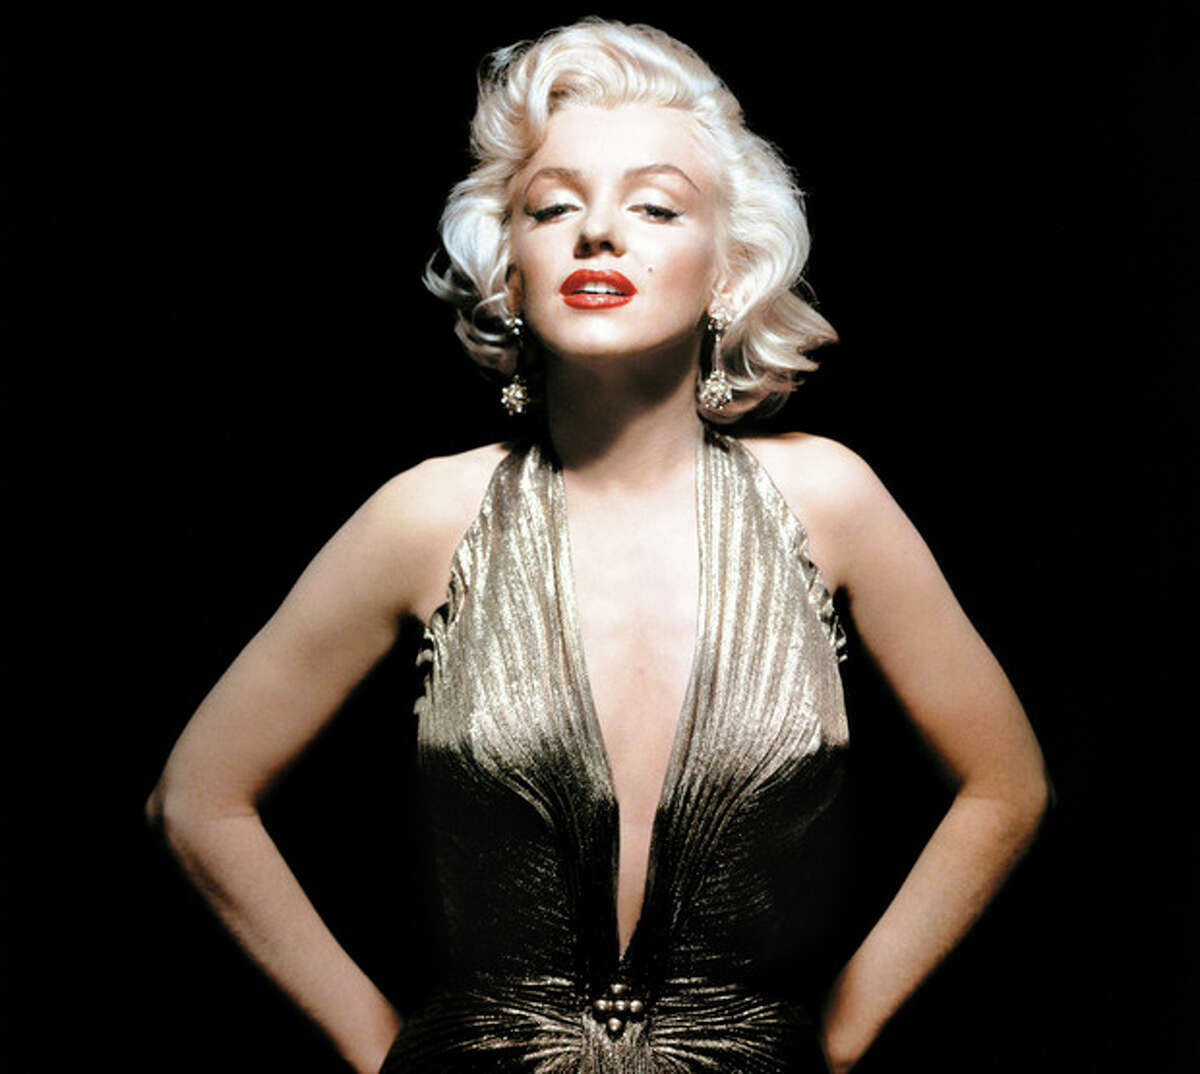 """In this undated publicity photo courtesy Running Press, Marilyn Monroe is shown wearing a knife-pleated gold lamé gown made from ?""""one complete circle of fabric.?"""" She wore this dress in """"Gentlemen Prefer Blondes."""" Monroe passed away a half-century ago this week, a murky death that remains one of Hollywood's most tantalizing mysteries. But look around: Her legend lives on, more vibrantly than ever. In a twist she surely would have appreciated, this 1950's bombshell has become a 21st-century pop culture phenom. (AP Photo/Courtesy Running Press)"""